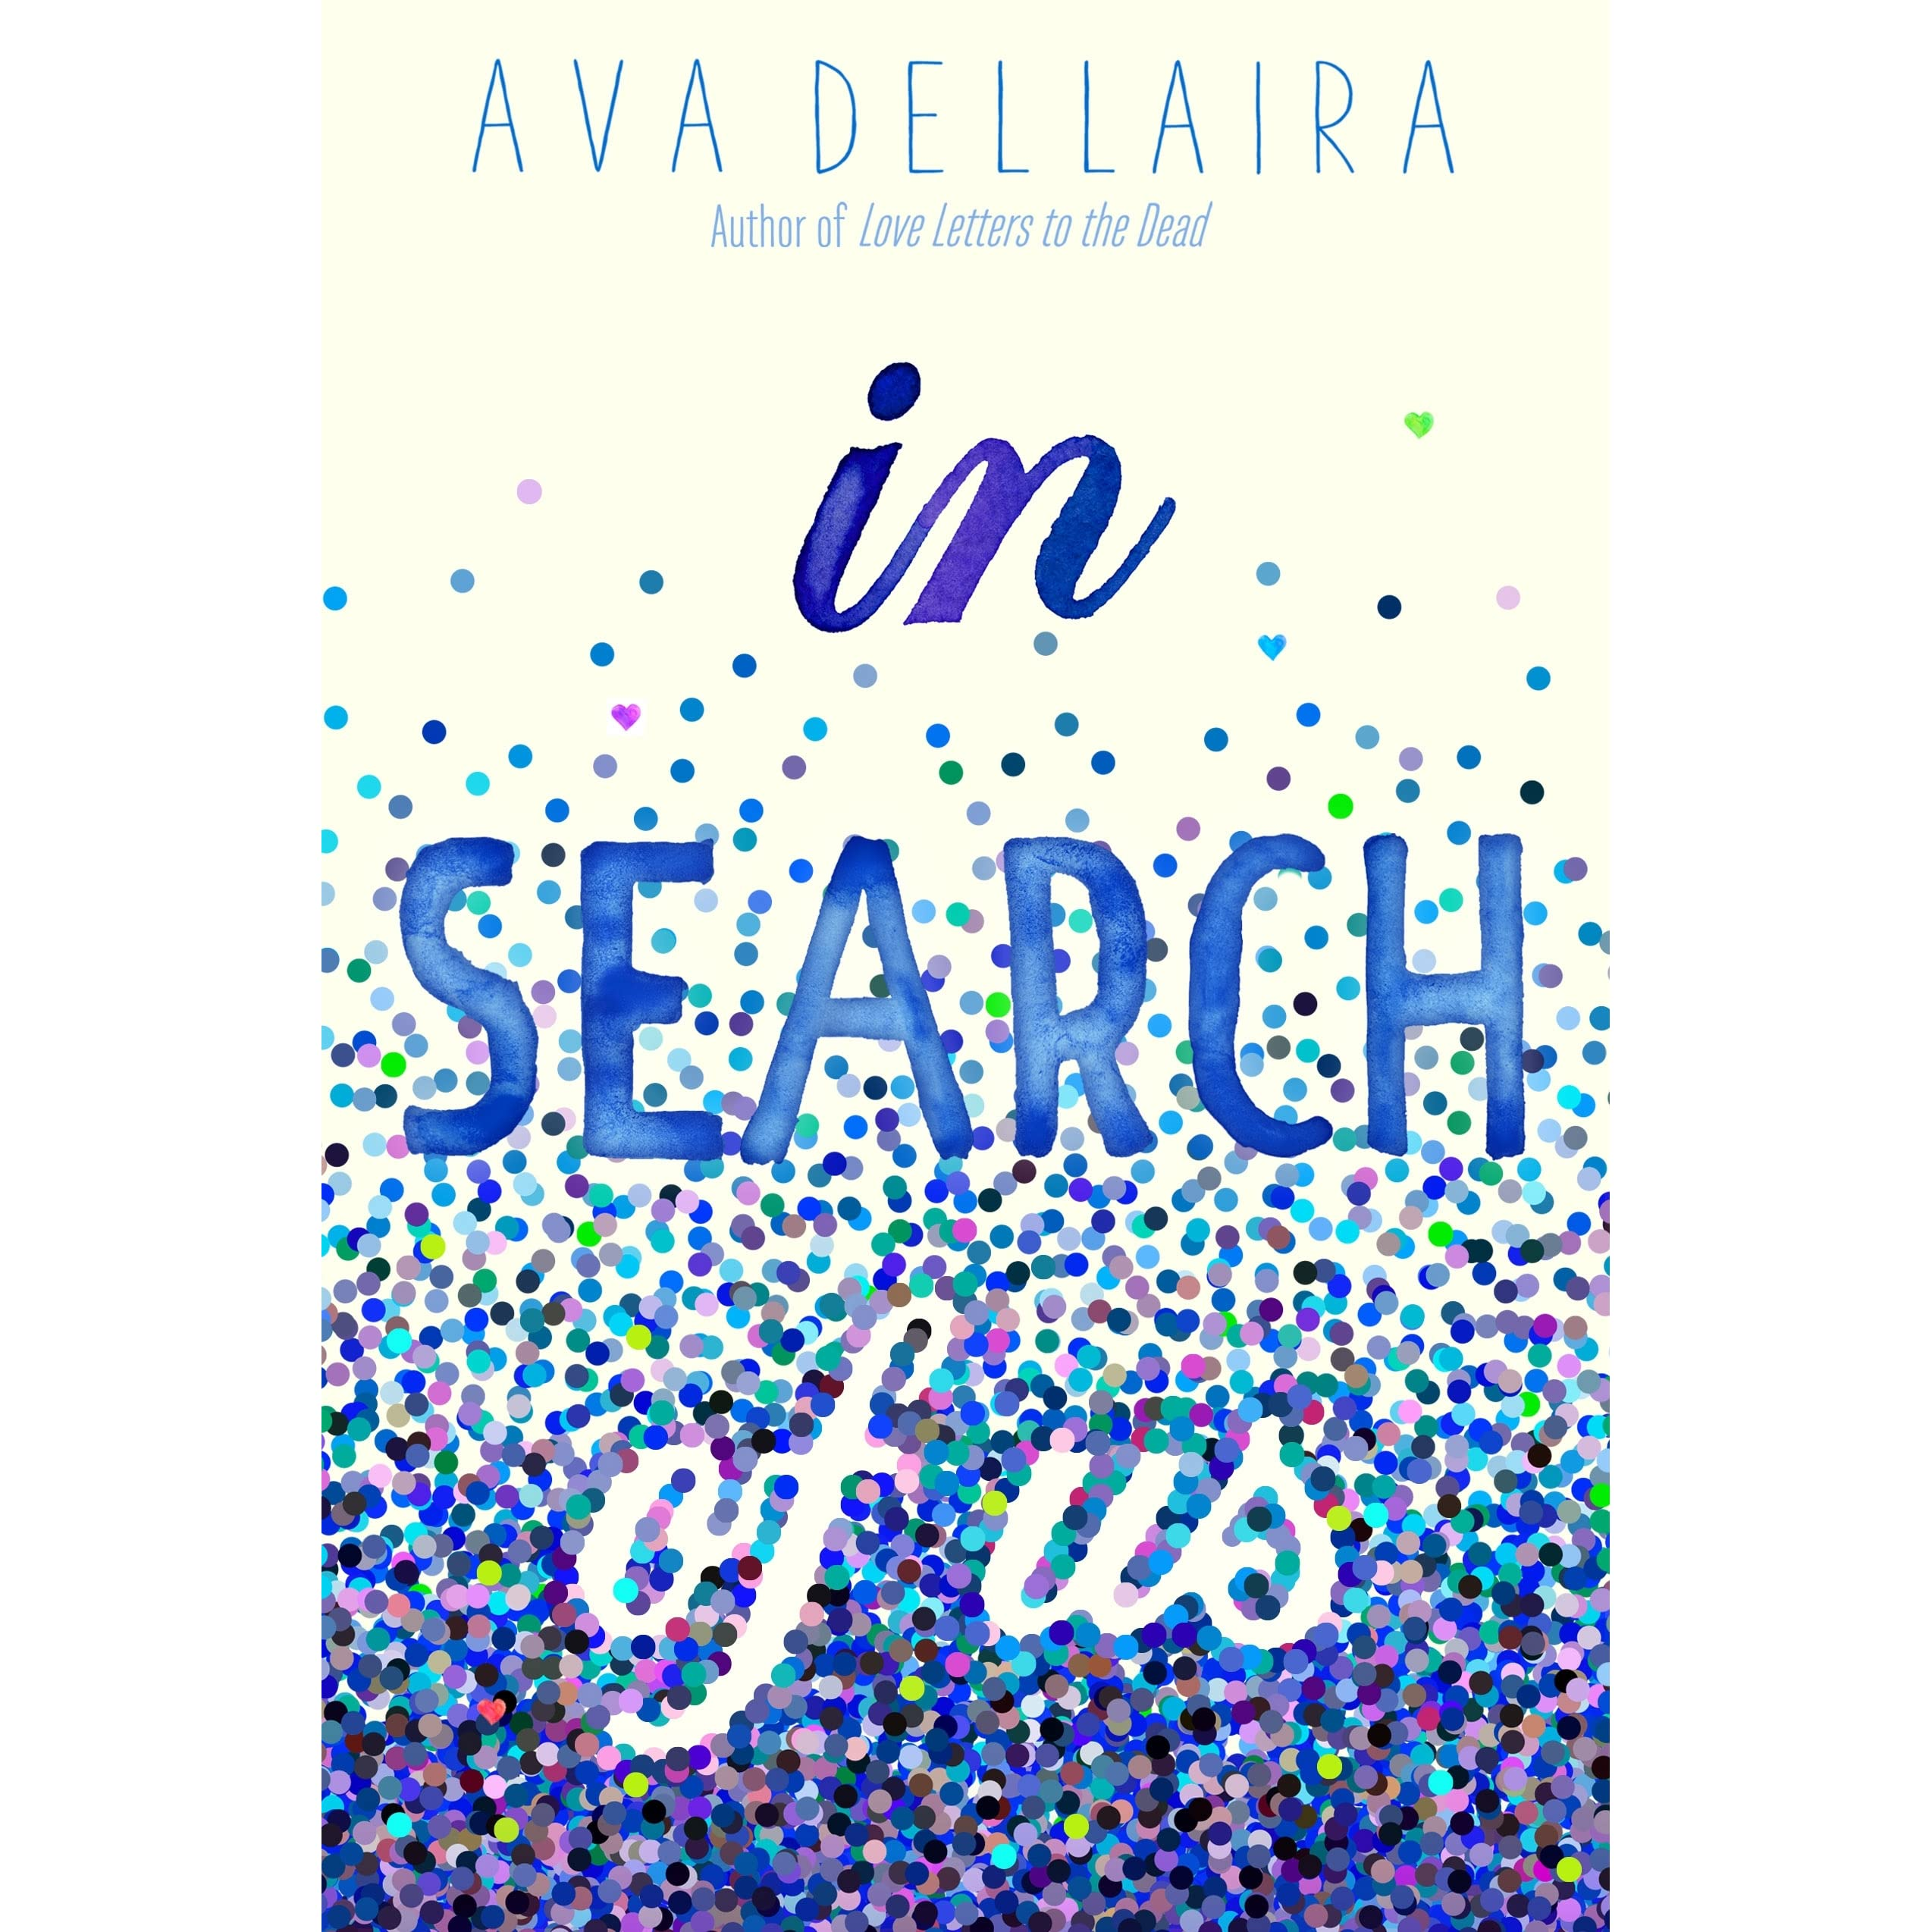 In Search Us by Ava Dellaira